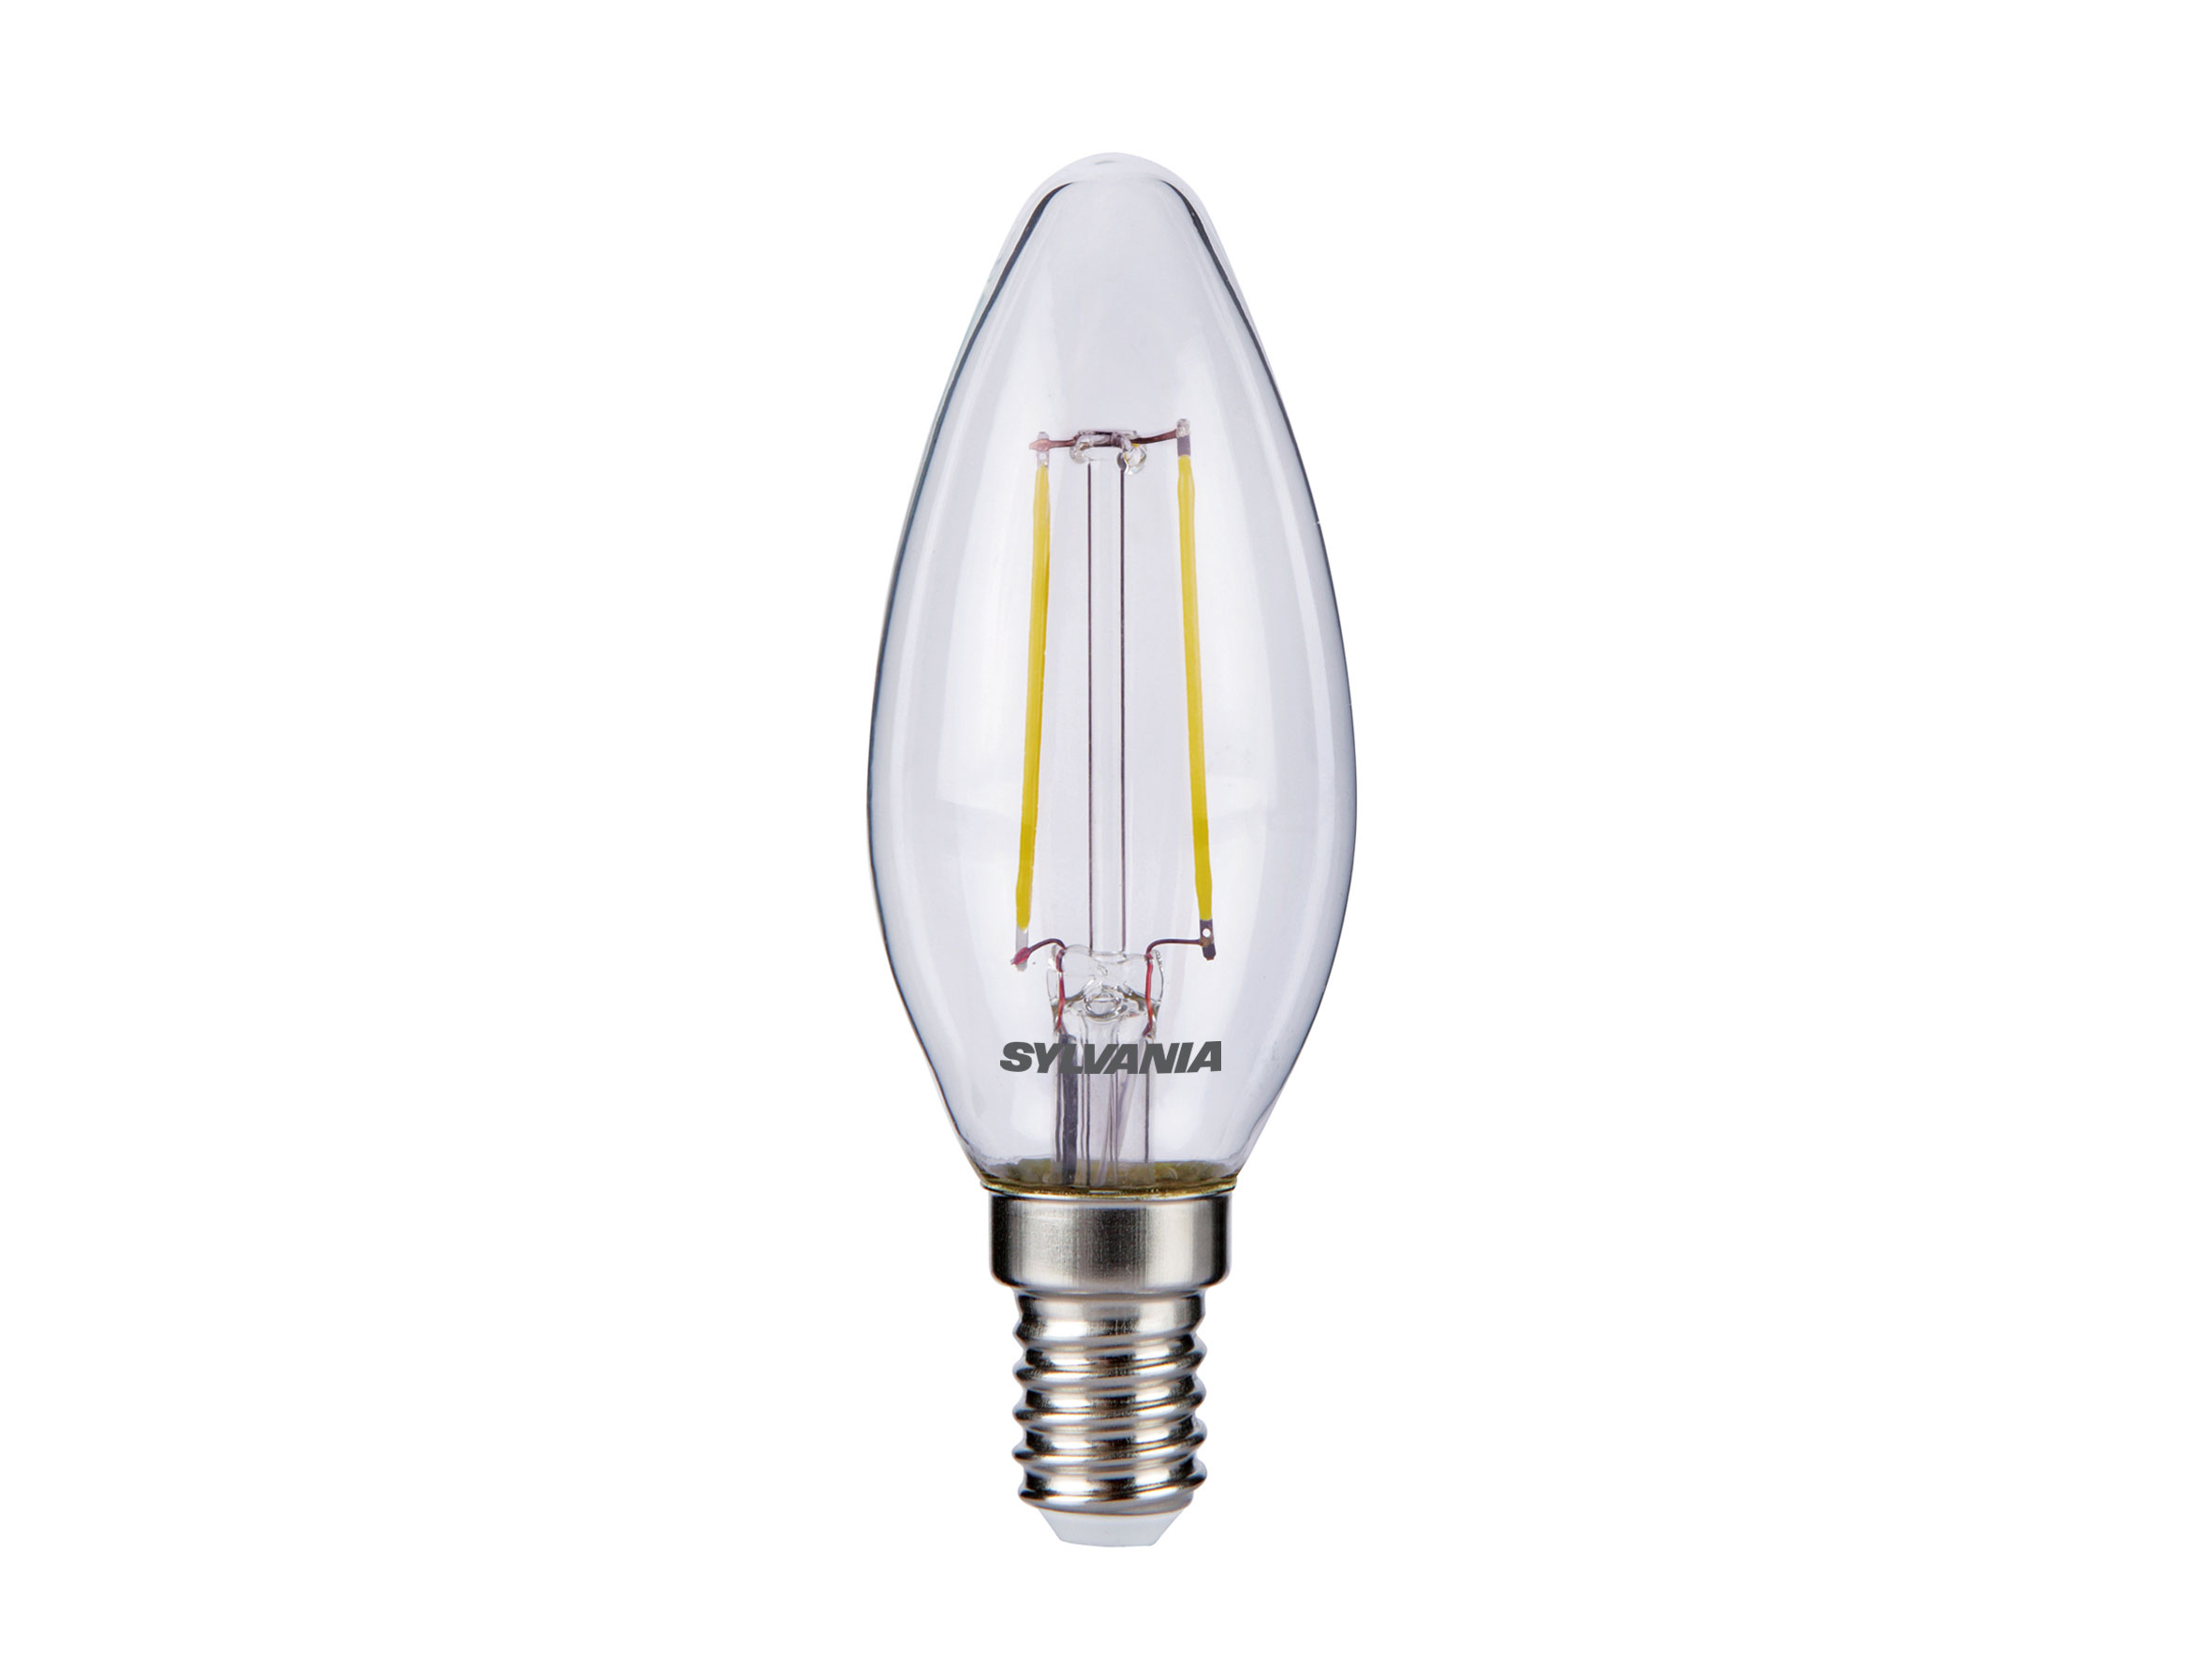 Sylvania 2.1W LED traditional candle light bulb E14 SES warm white 2700K